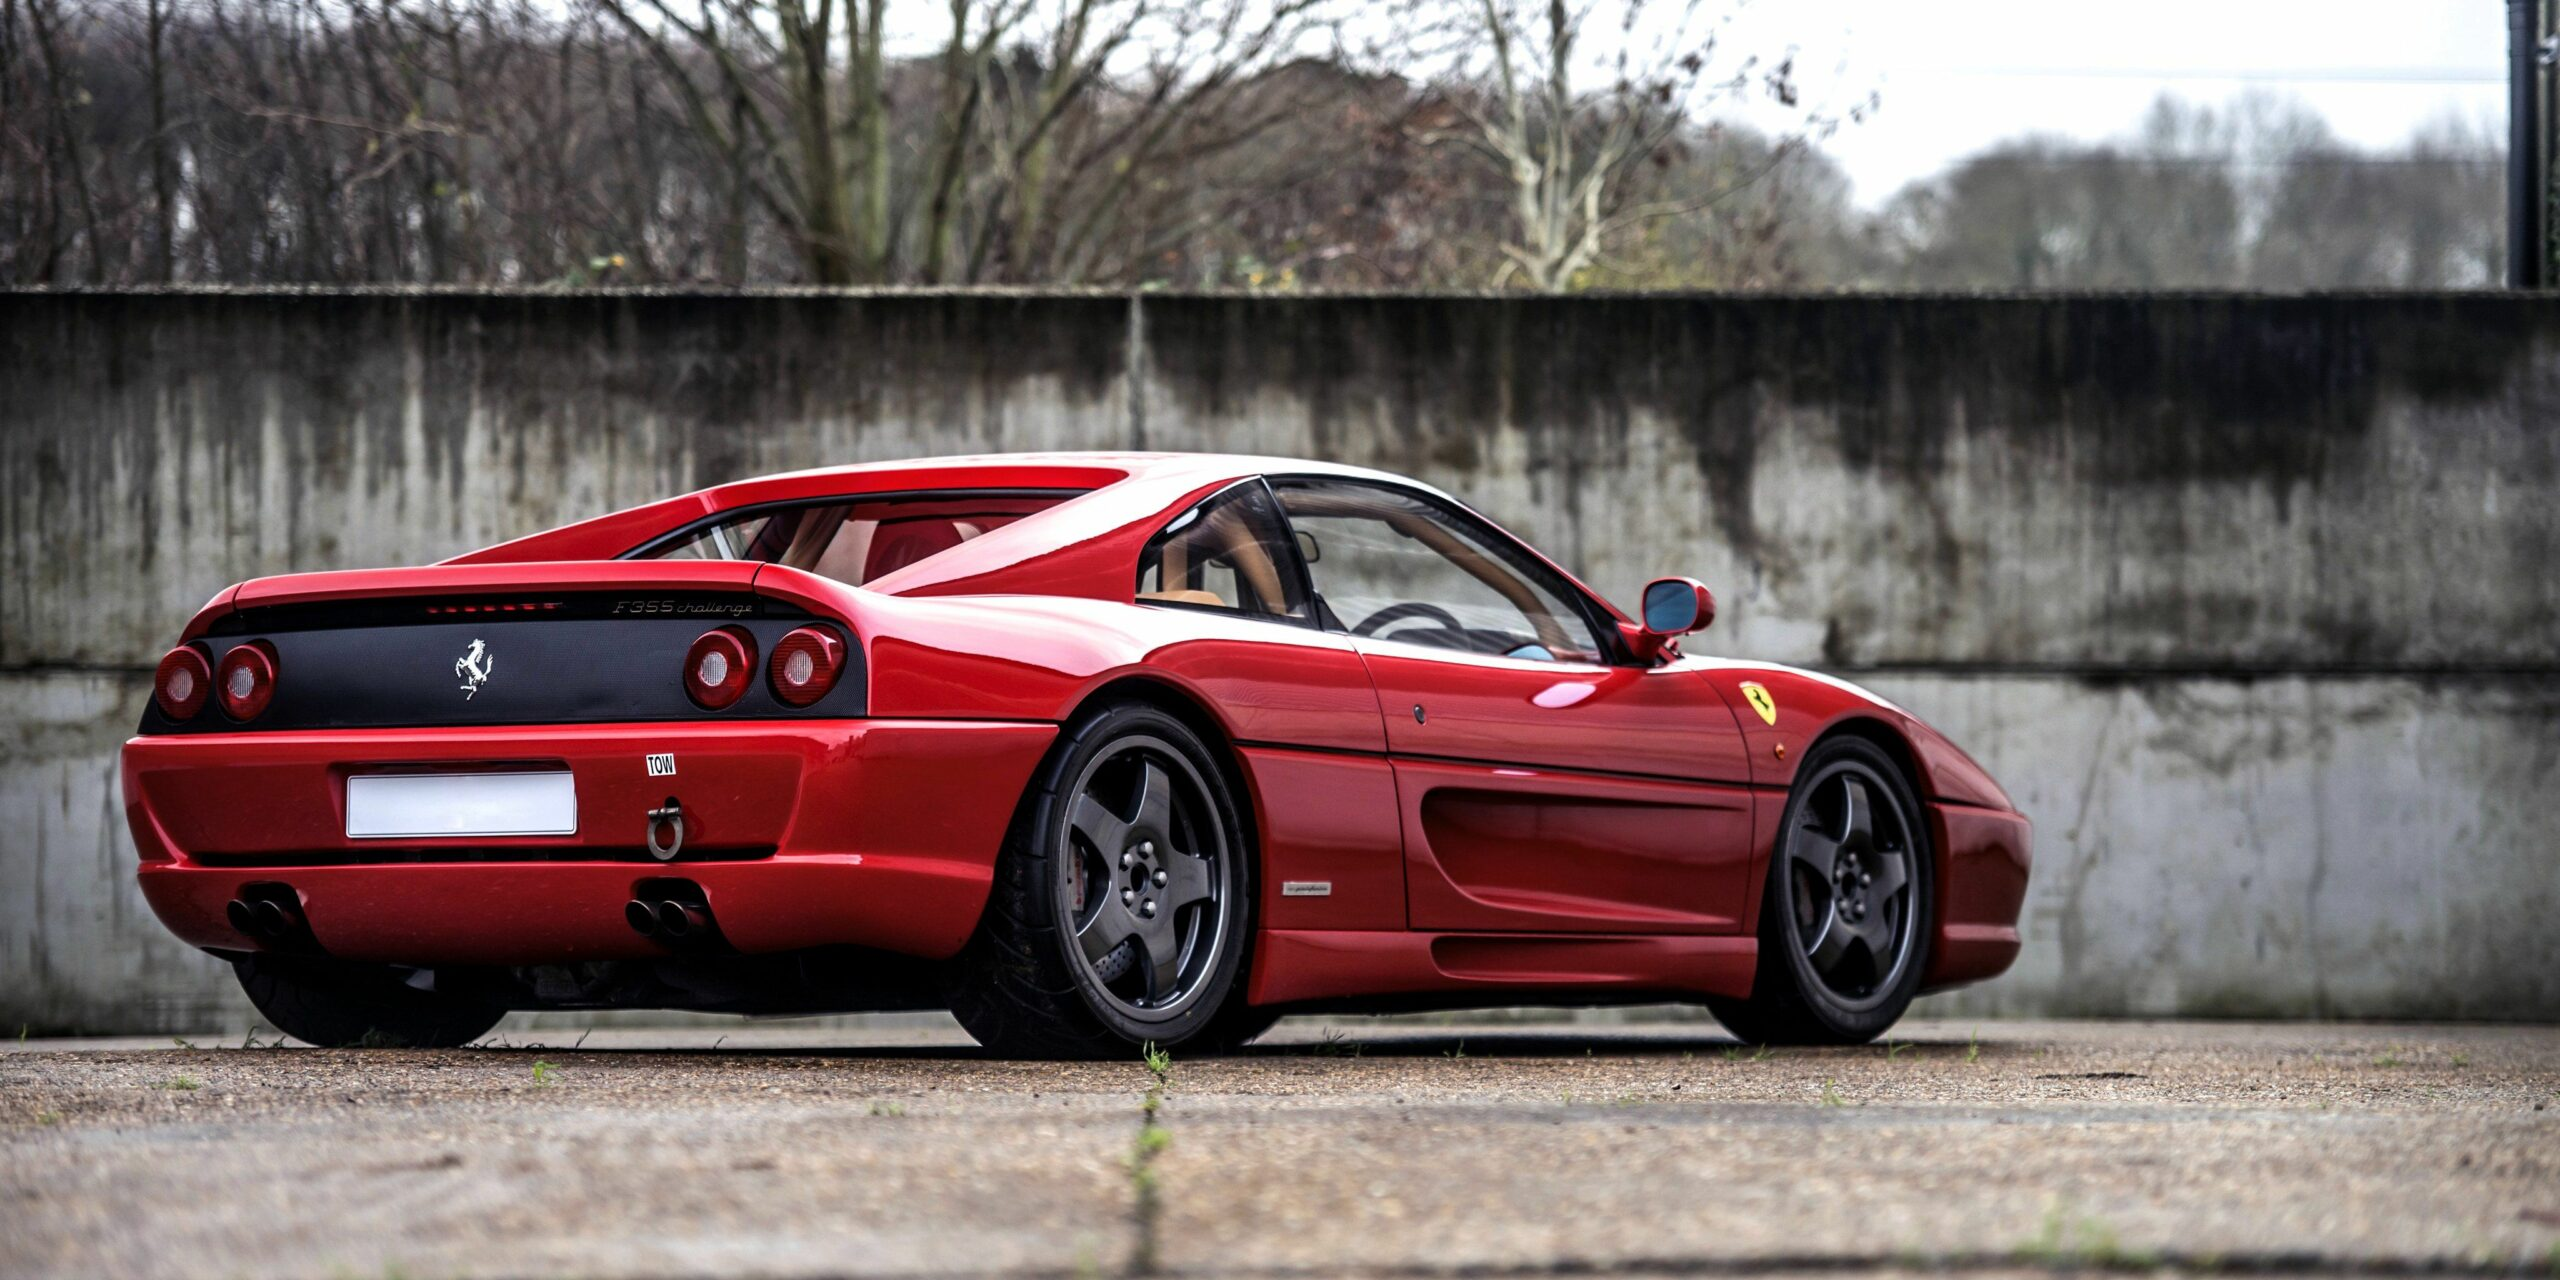 Ferrari F355 Wallpapers